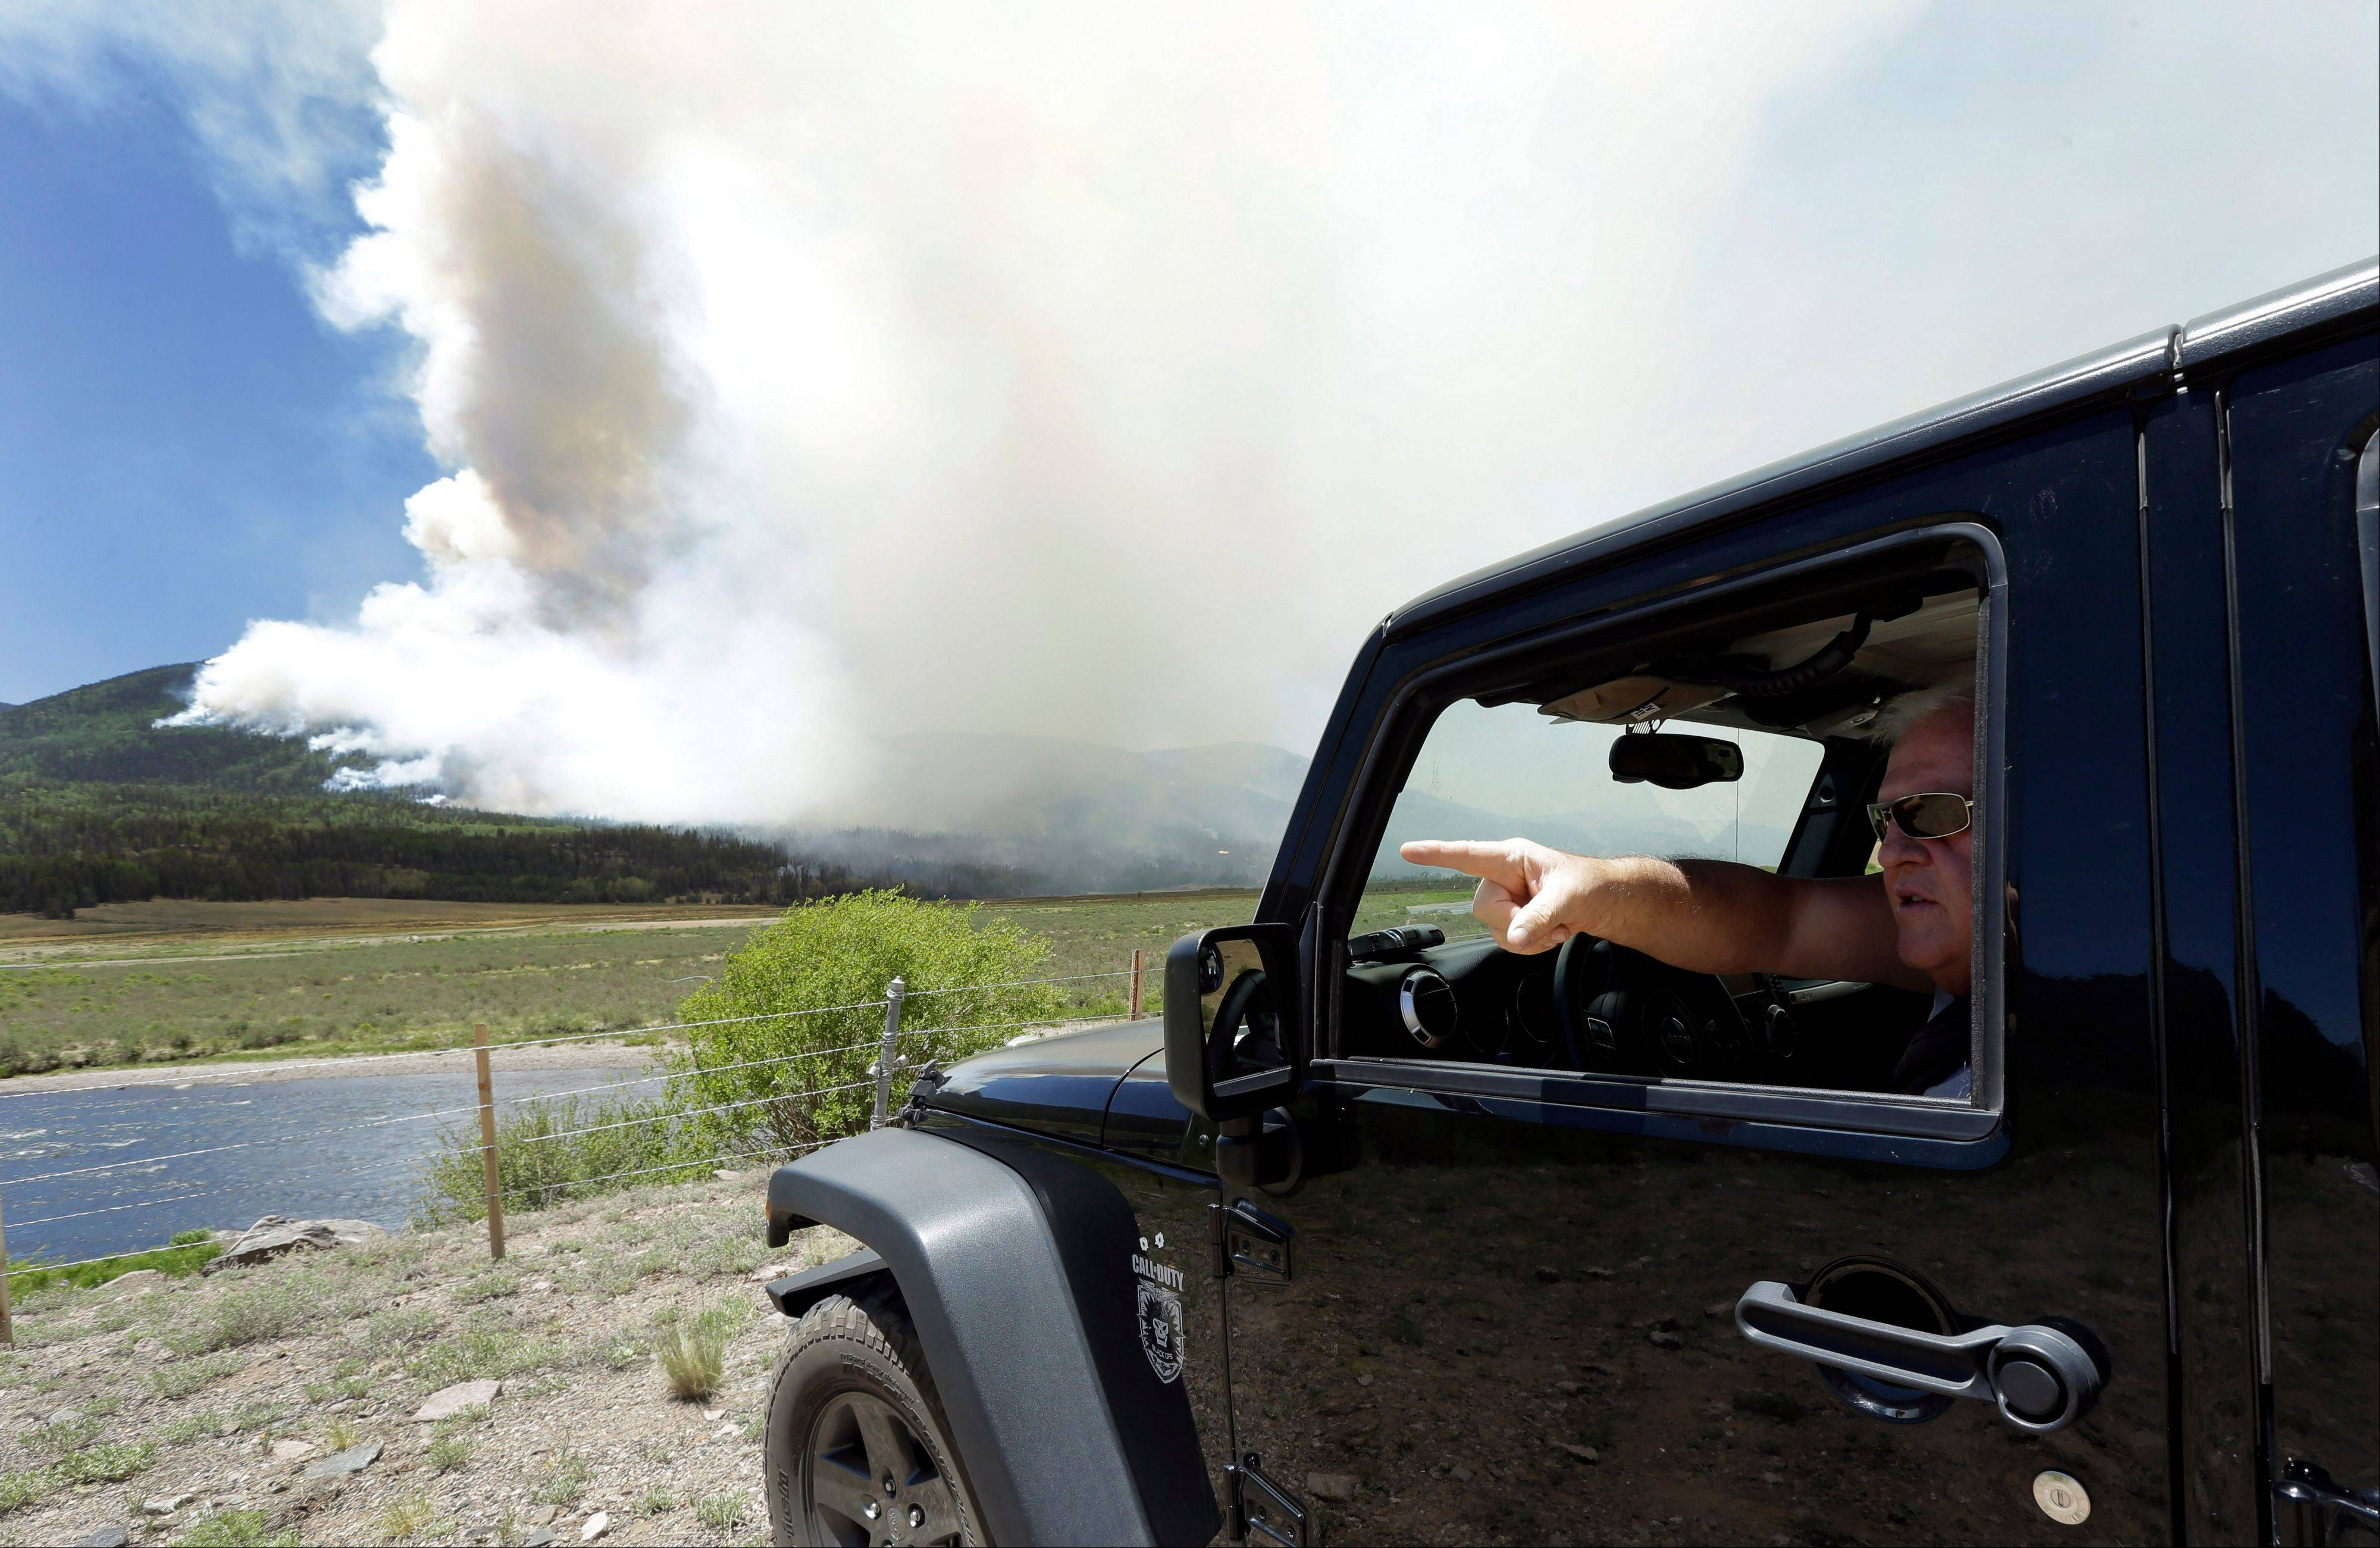 Garry Van Der Starre points out as a wildfire burns on a hillside along highway 149 west of Creede, Colo., Monday, June 24, 2013. Crews defending resort towns, homes and cabins against a massive and erratic wildfire in Colorado's southwest mountains were looking Tuesday for a slight break after nearly a week of unrelenting winds.